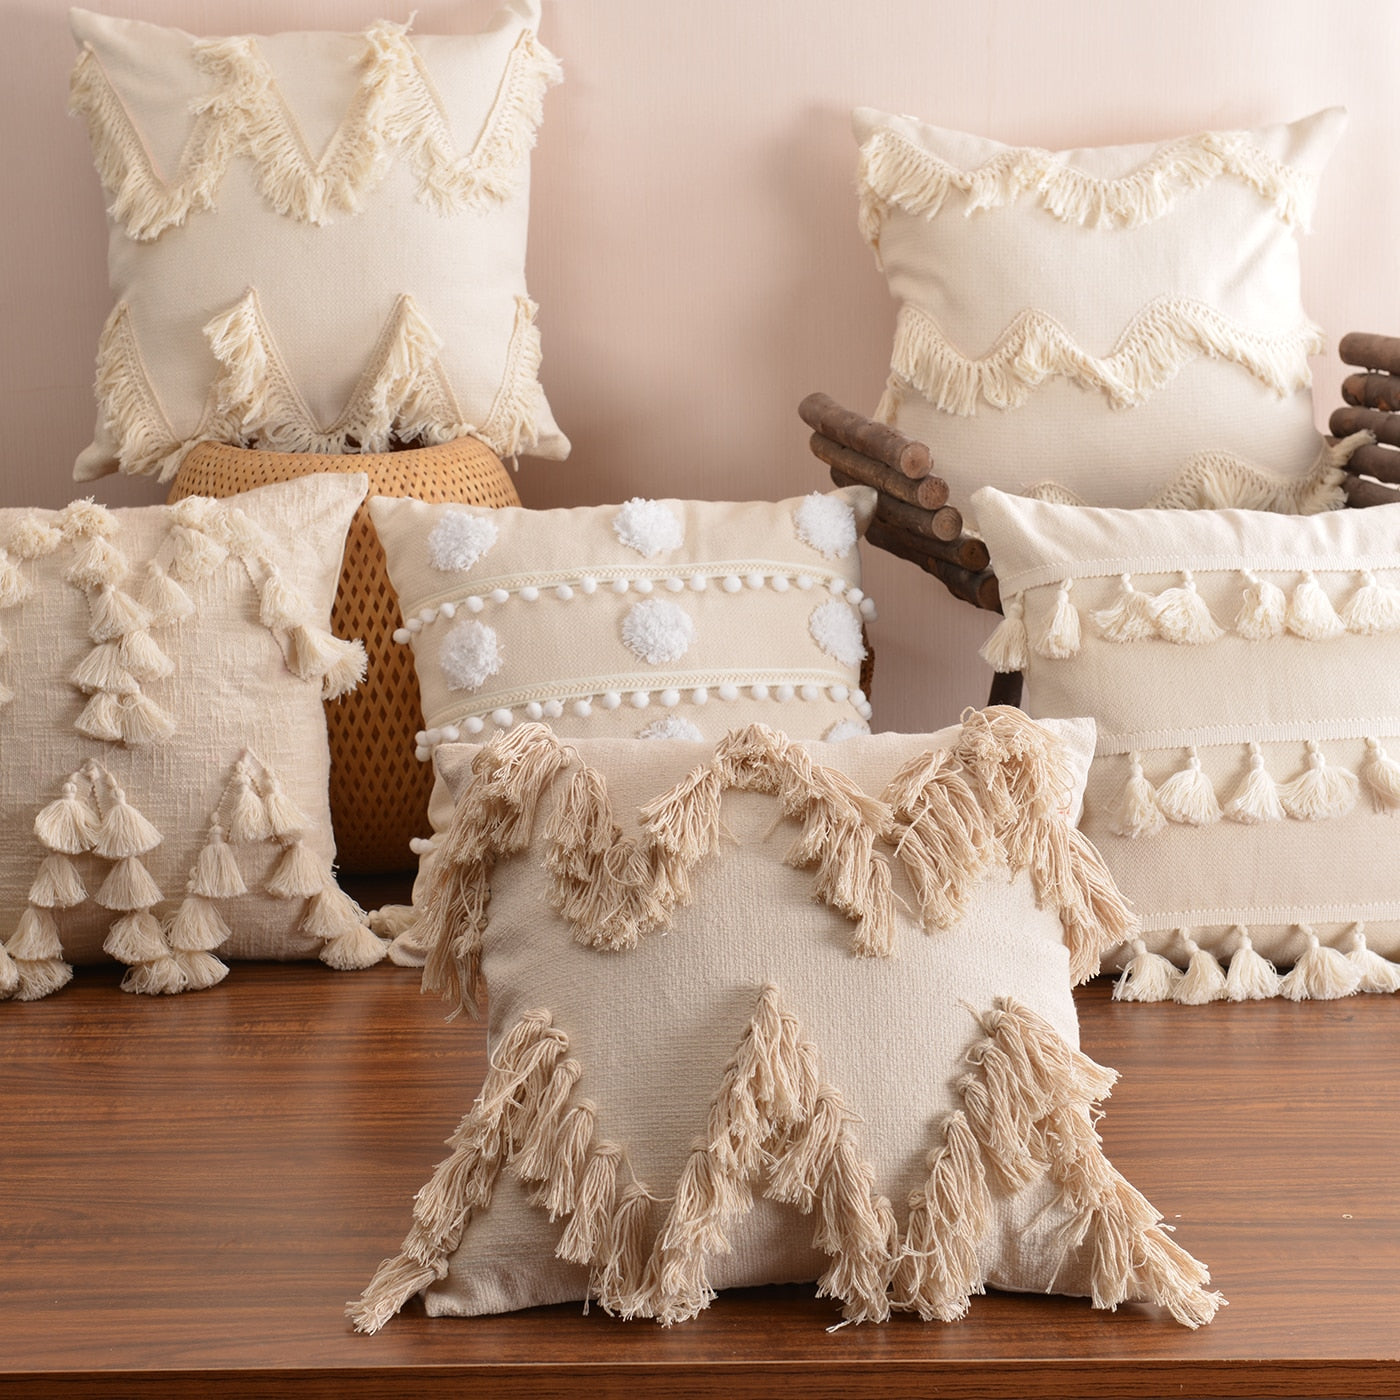 Boho Style Cushion Cover Plush With Tassels Cute Circle Moroccan Style Pillow Case Macrame  Home sofa Decorative drop shippng